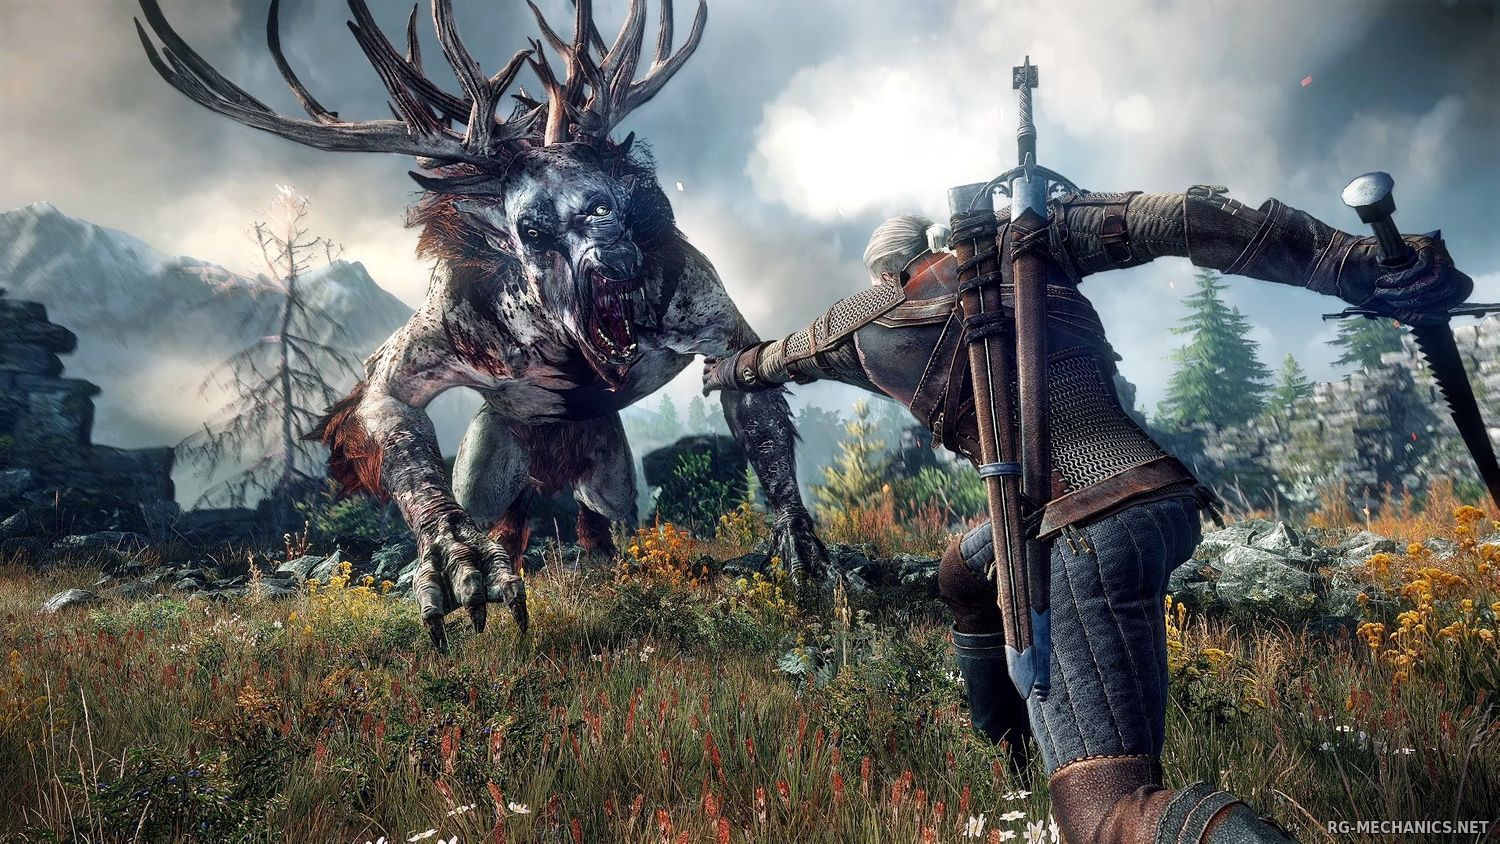 Скриншот 1 к игре The Witcher 3: Wild Hunt + The Witcher 3 HD Reworked Project (mod v. 12.0) (2015) скачать торрент RePack